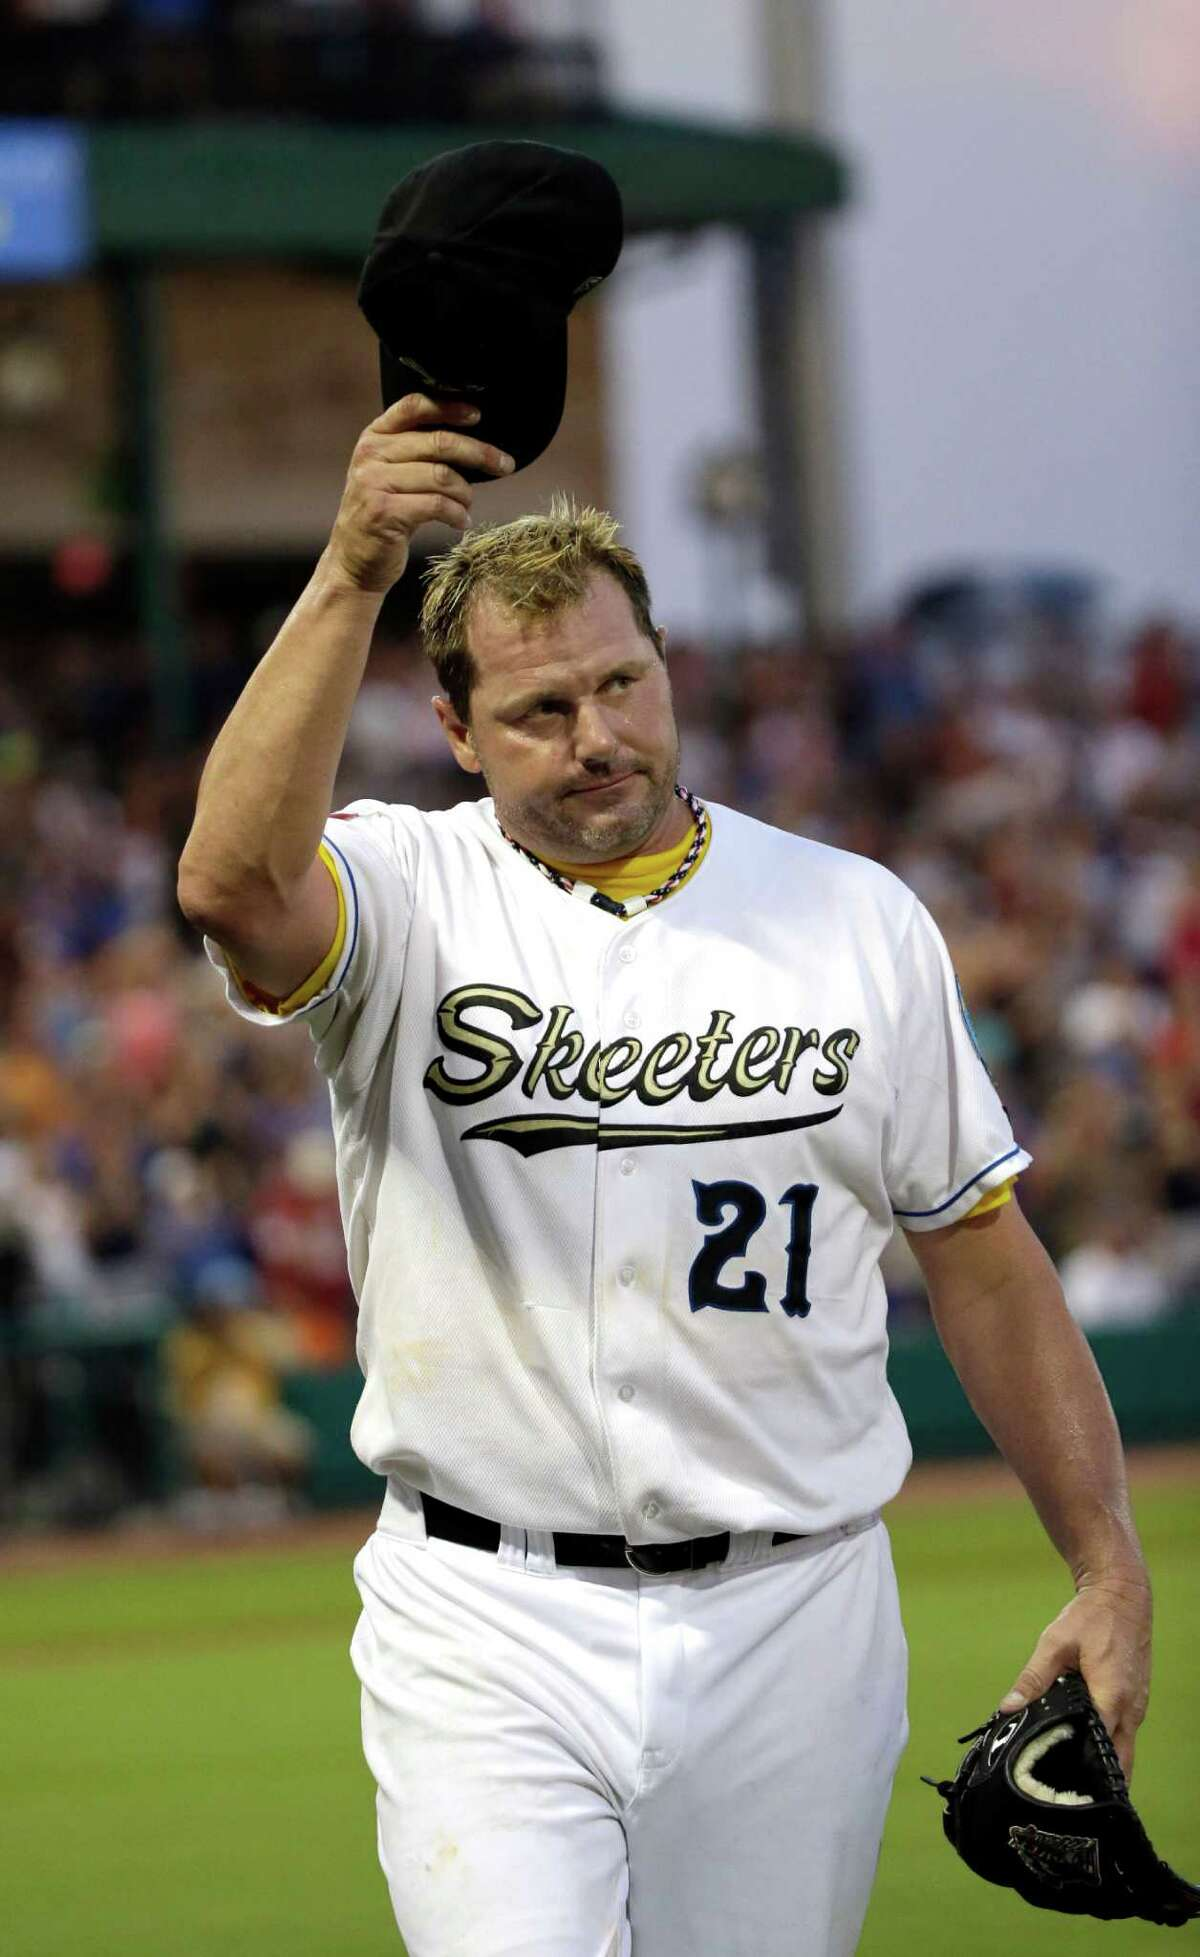 Sugar Land Skeeters pitcher Roger Clemens acknowledges the crowd as he leaves during the fourth inning of a baseball game against the Bridgeport Bluefish Saturday, Aug. 25, 2012, in Sugar Land, Texas. Clemens, a seven-time Cy Young Award winner, signed with the Skeeters of the independent Atlantic League this week. (AP Photo/David J. Phillip)